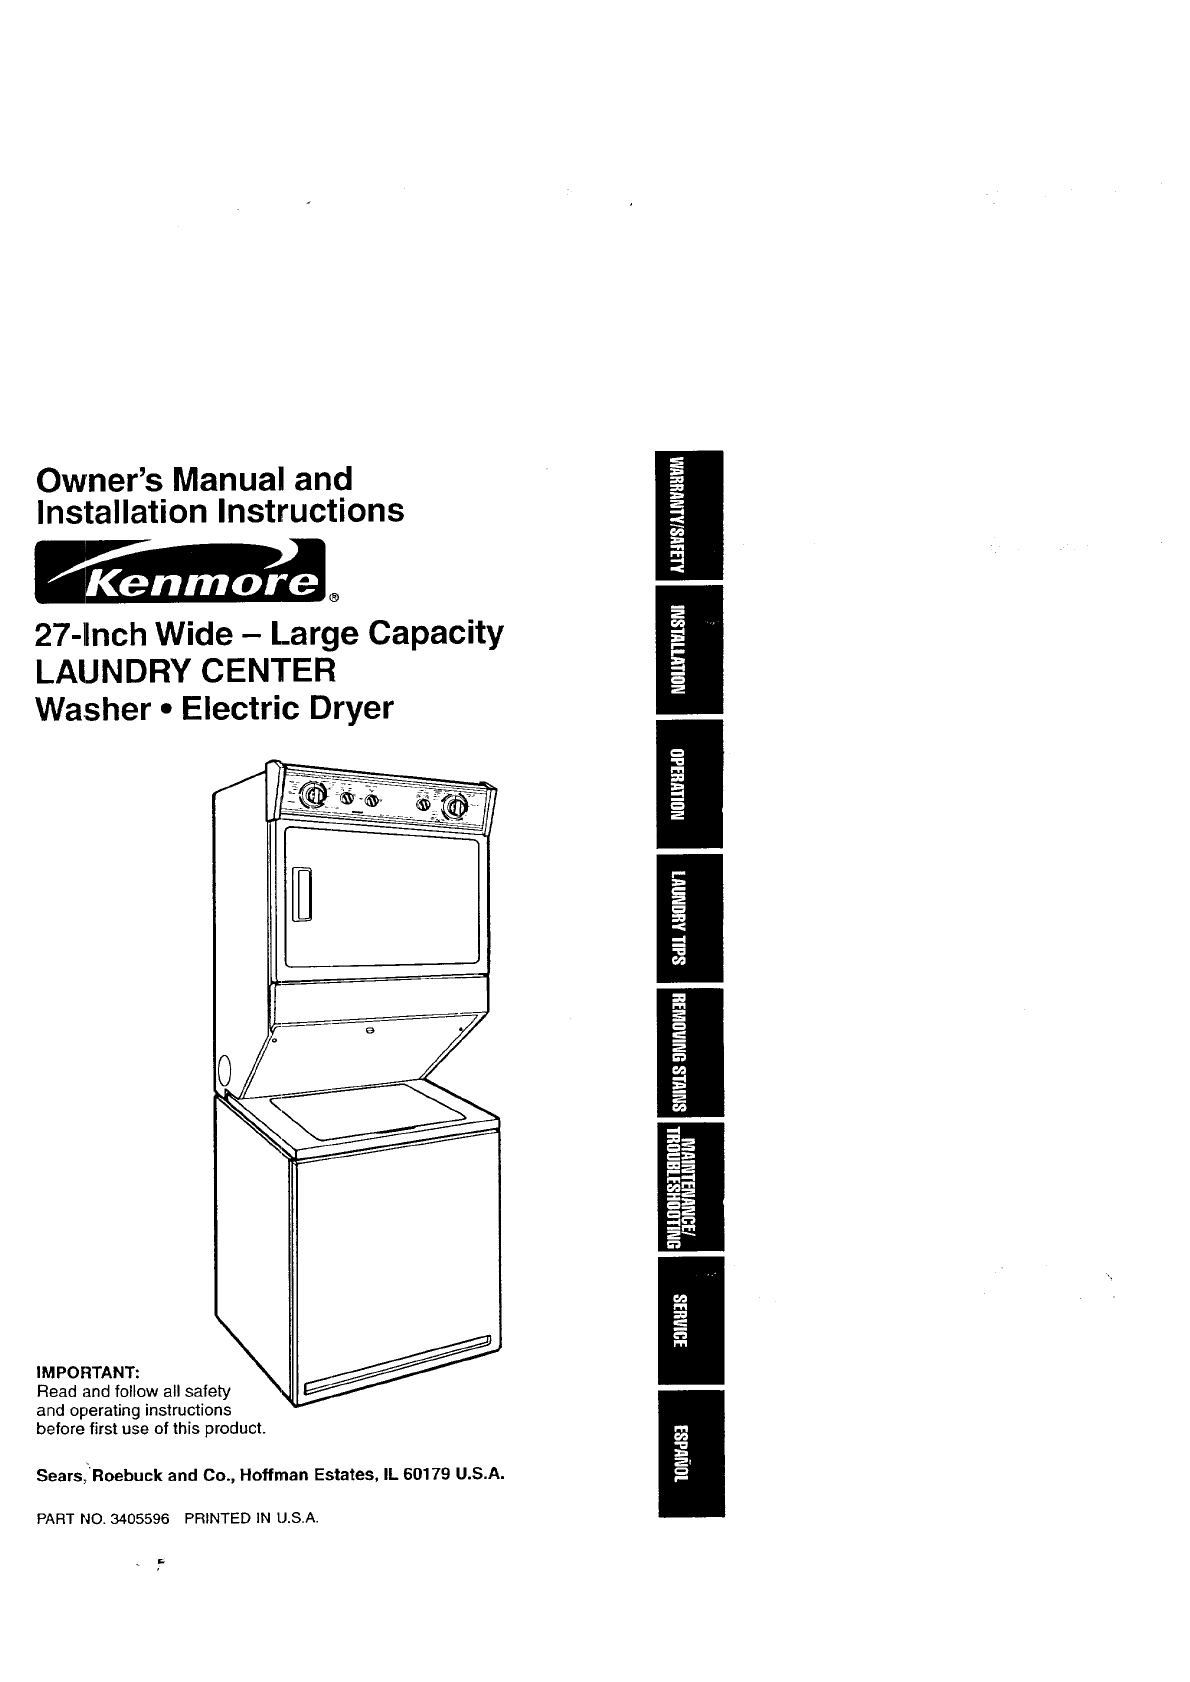 Kenmore Washer/Dryer Washer/Dryer User Guide